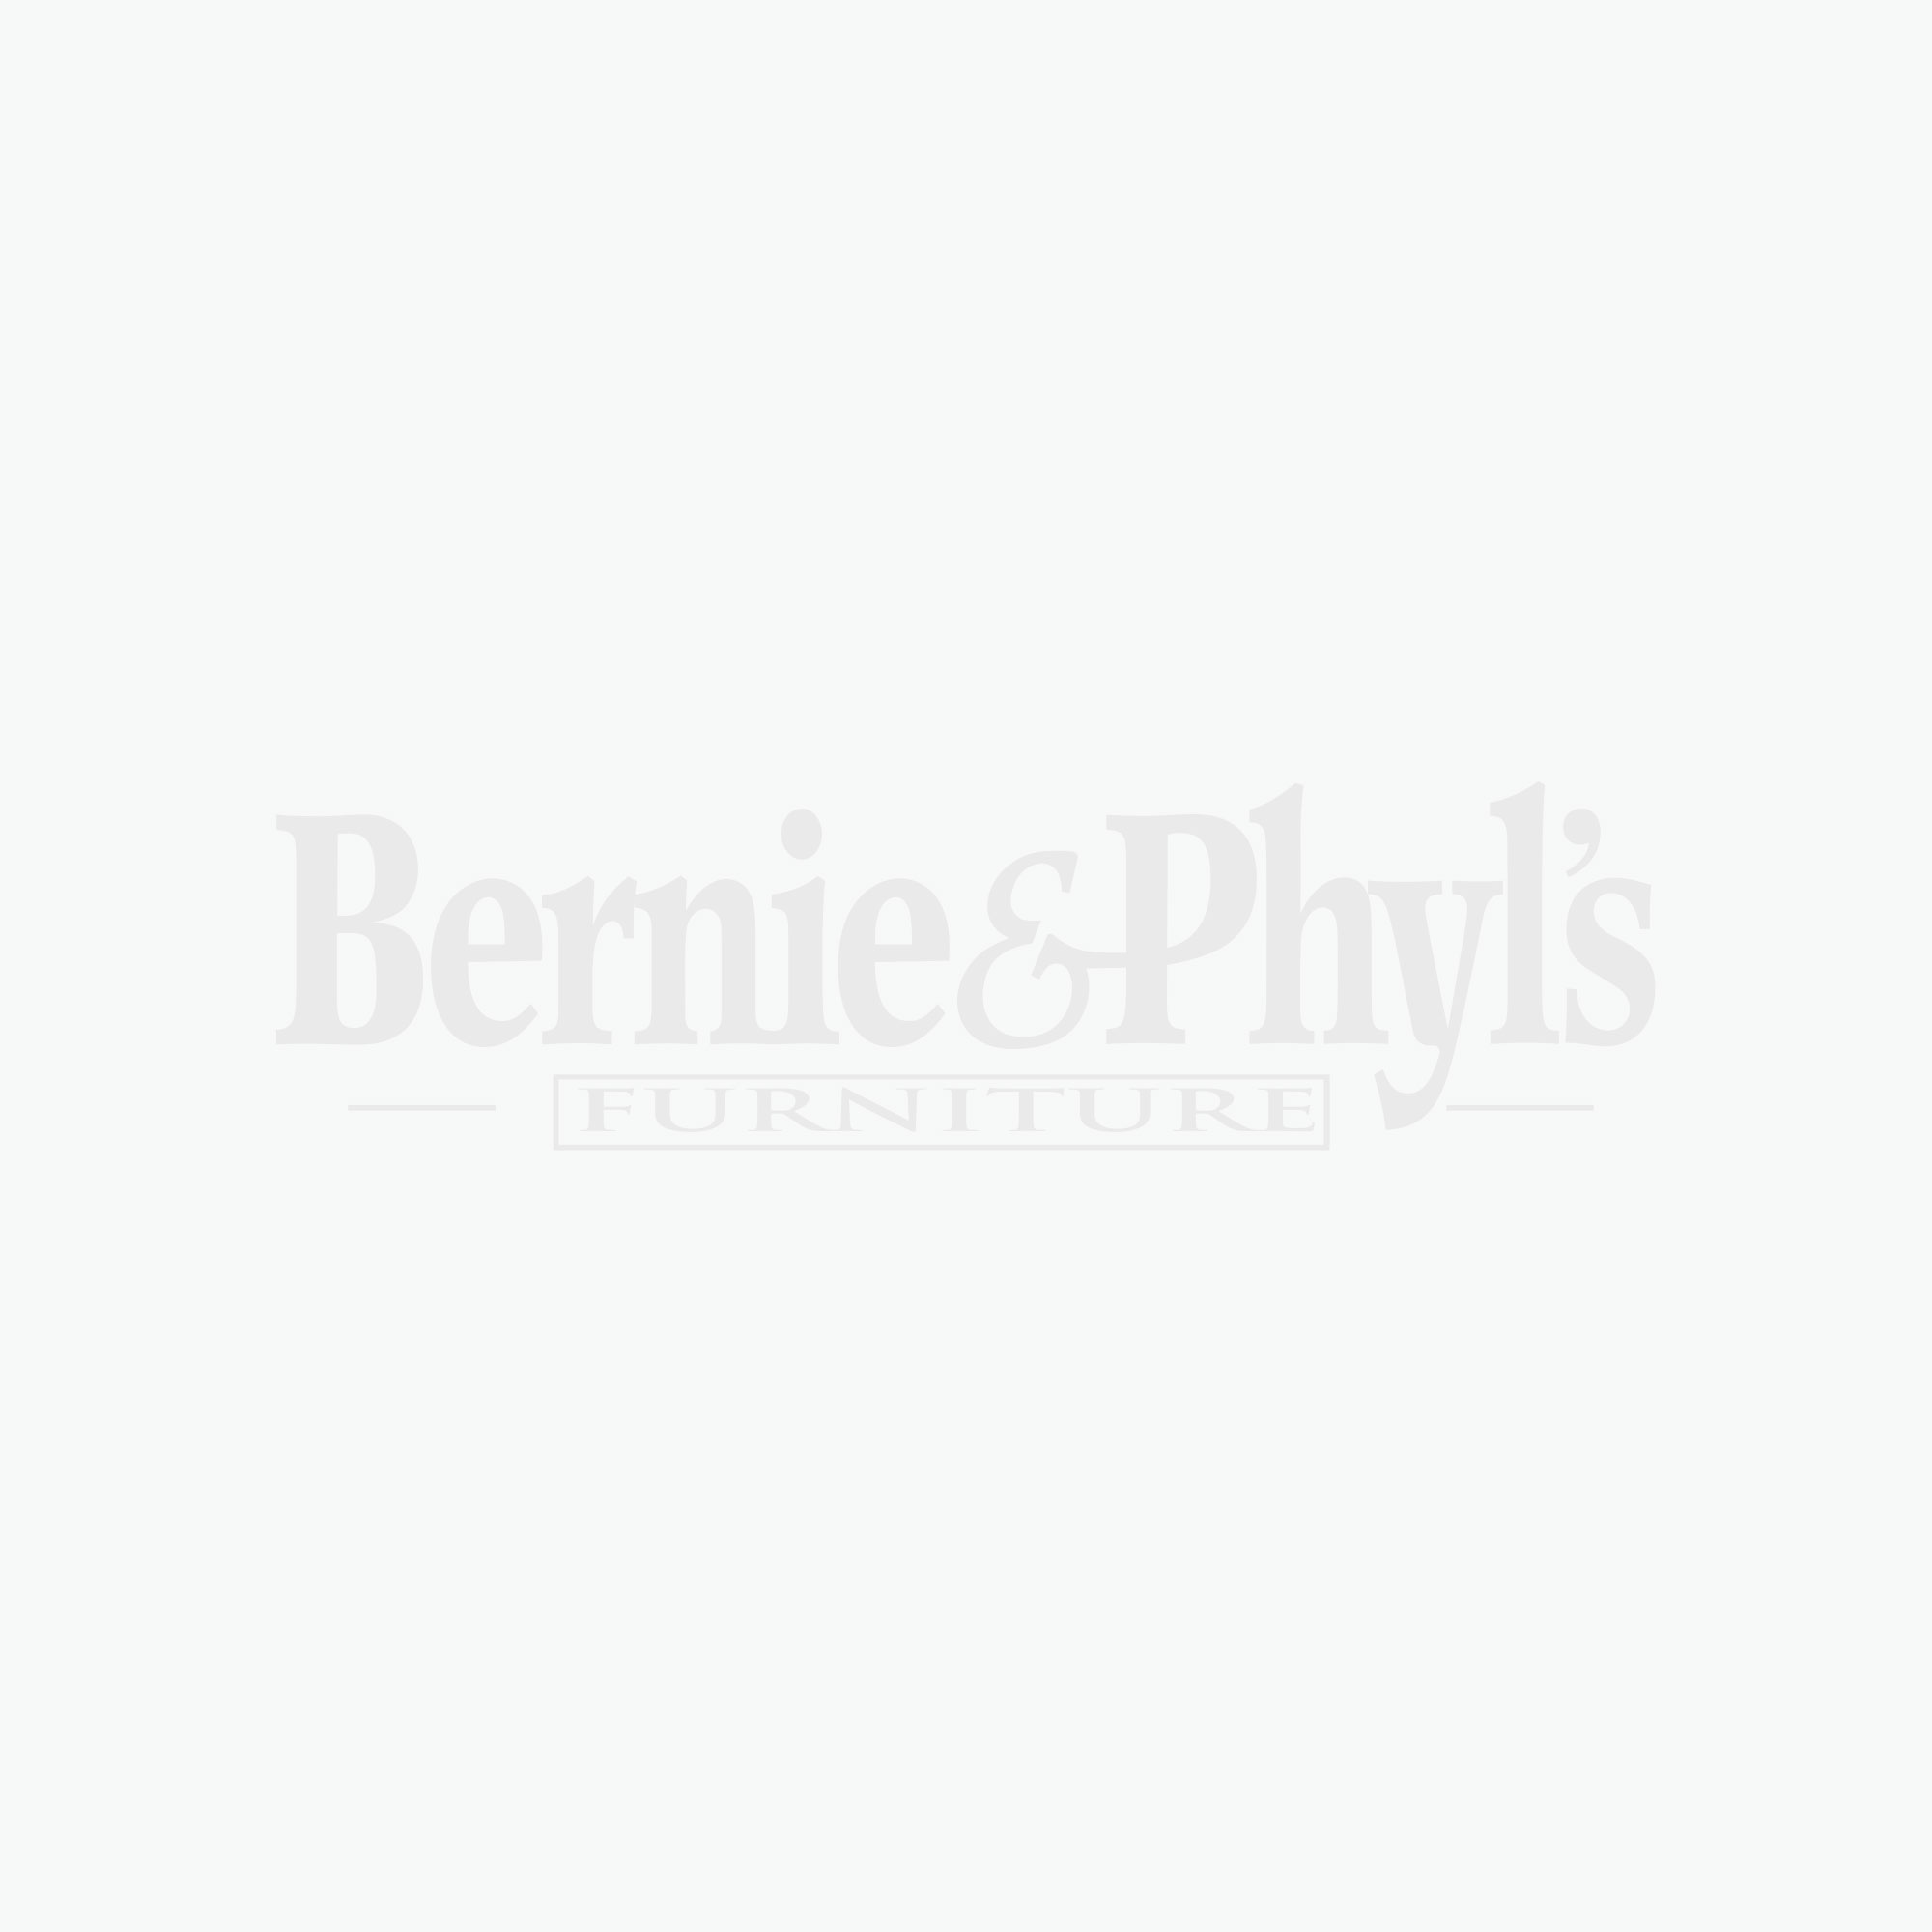 Wall Mount Craft Storage Rack W/ Baskets - Black W/ Espresso